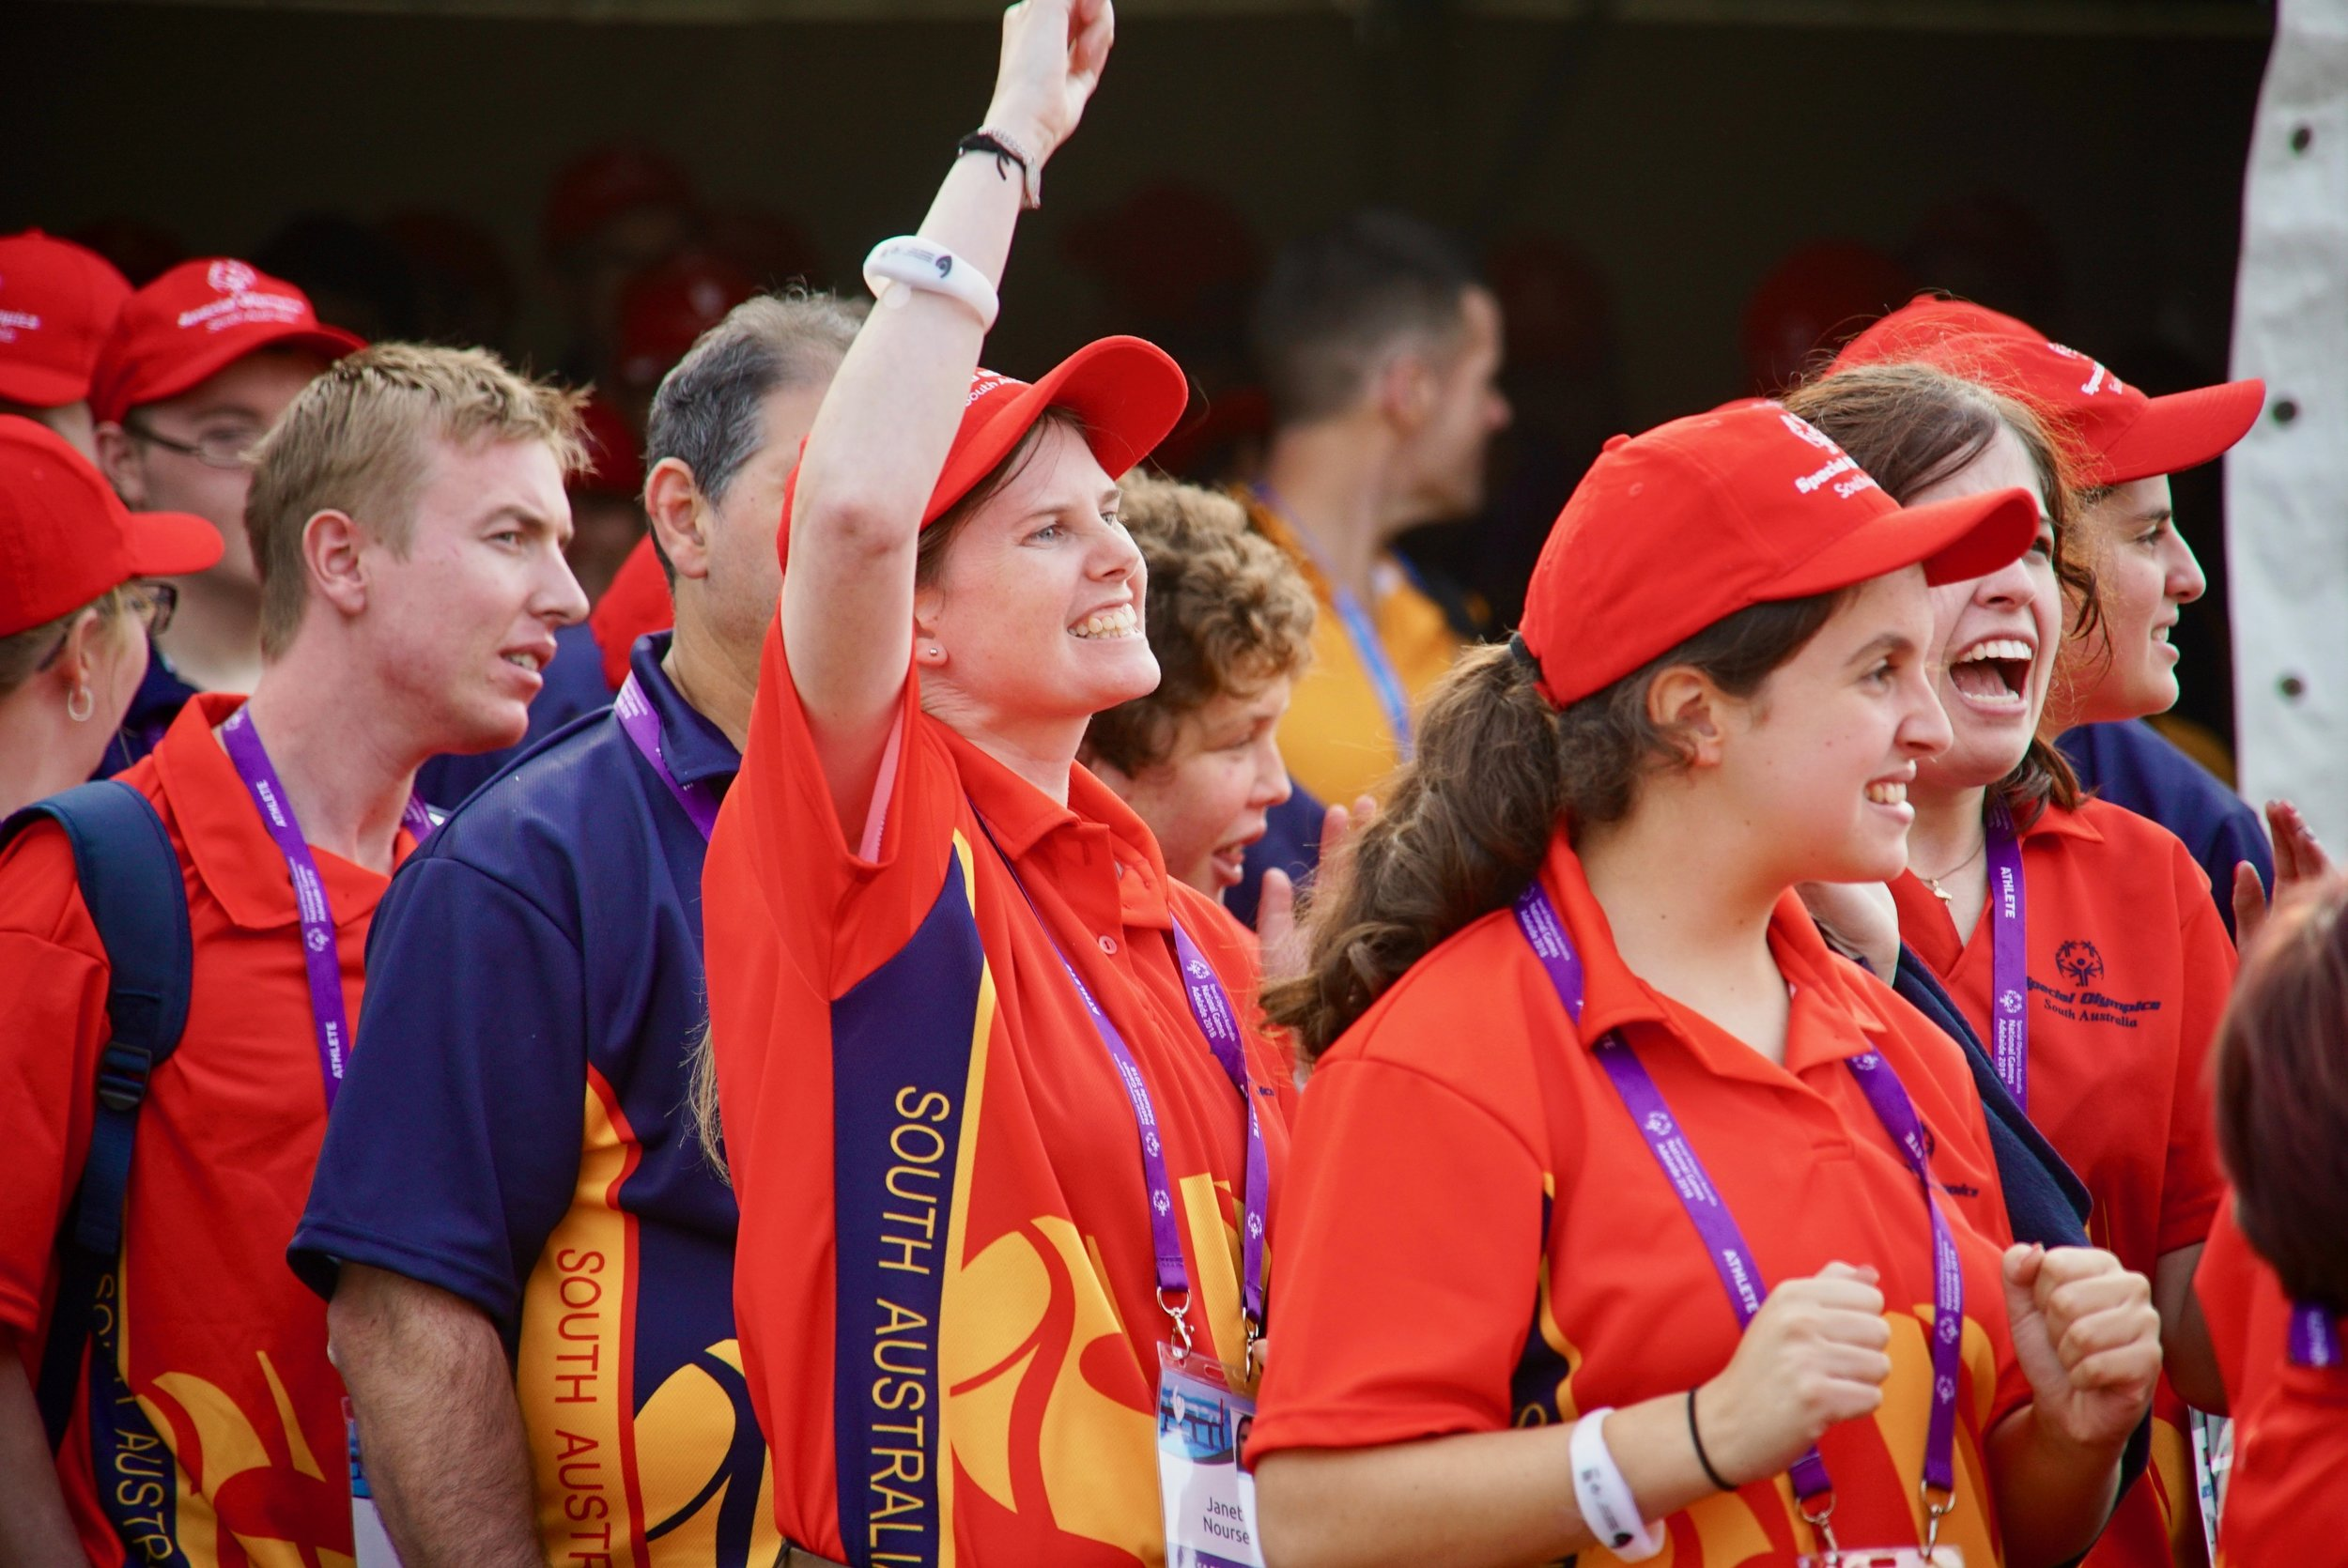 2018 Special Olympics National Games Opening Ceremony